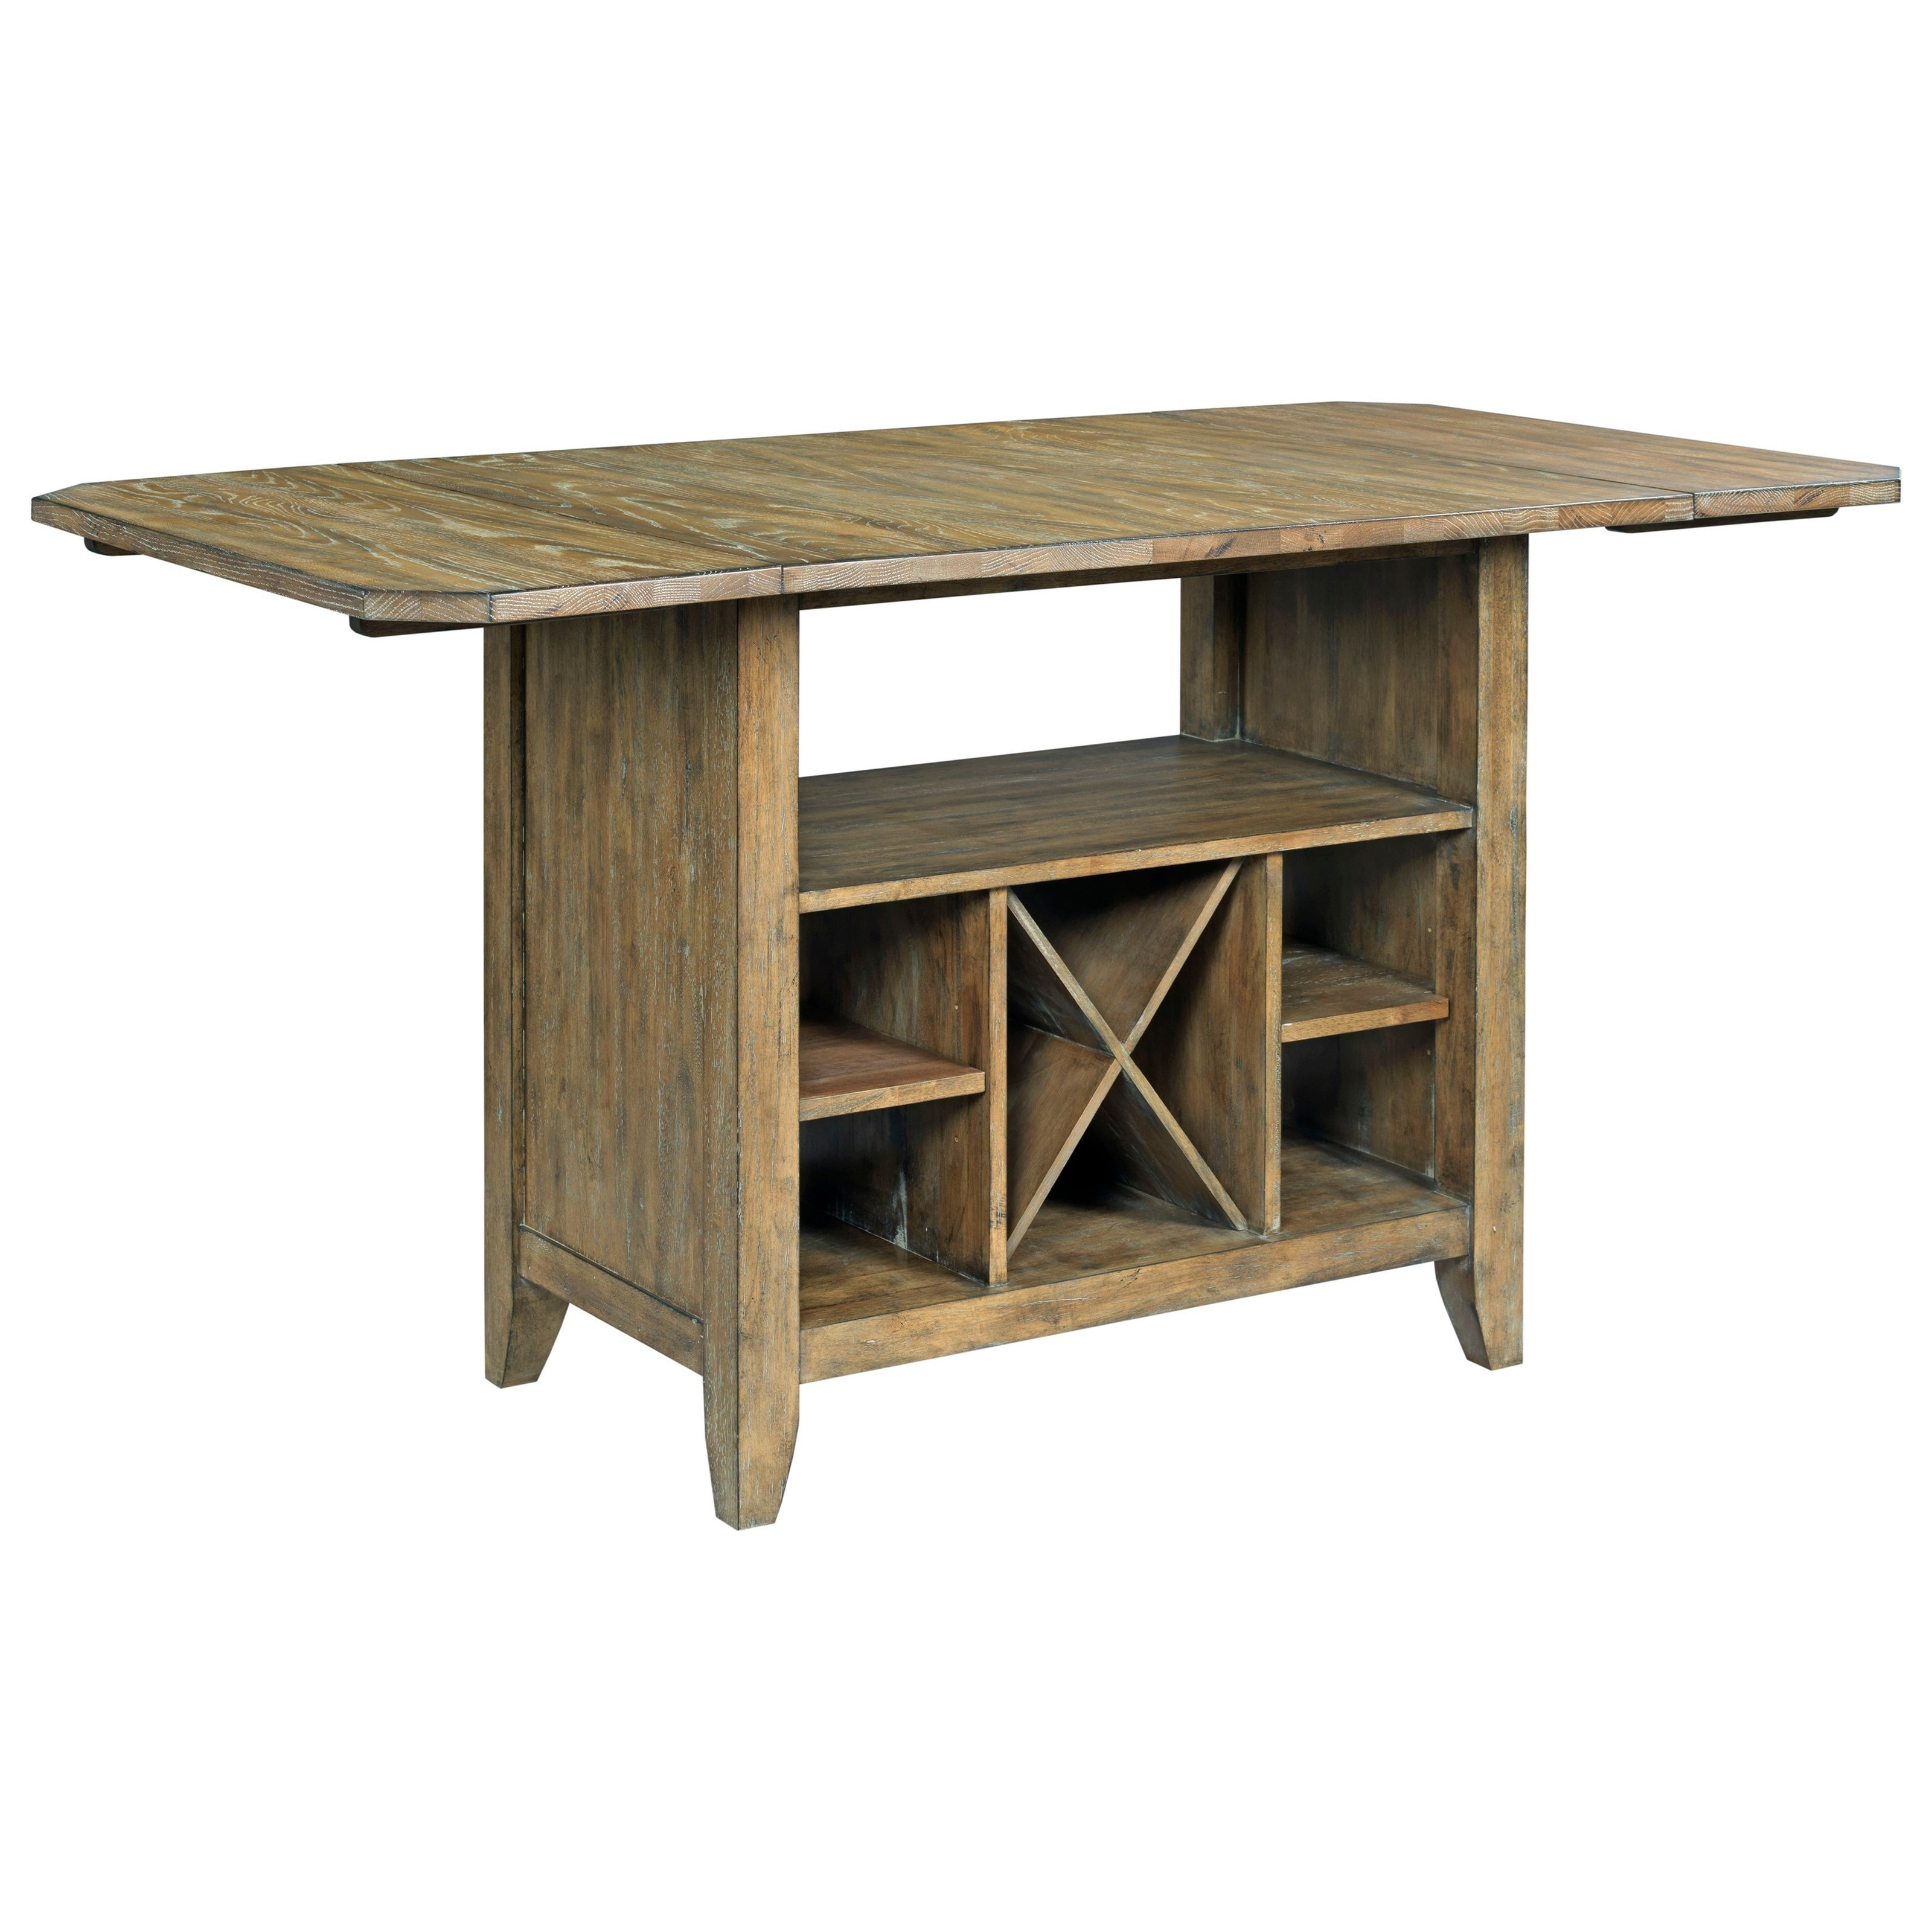 Kitchen island table with storage Do It Yourself Kincaid Furniture The Nook Solid Wood Kitchen Island With Protected Top And Wine Storage Homedit Kincaid Furniture The Nook Solid Wood Kitchen Island With Protected